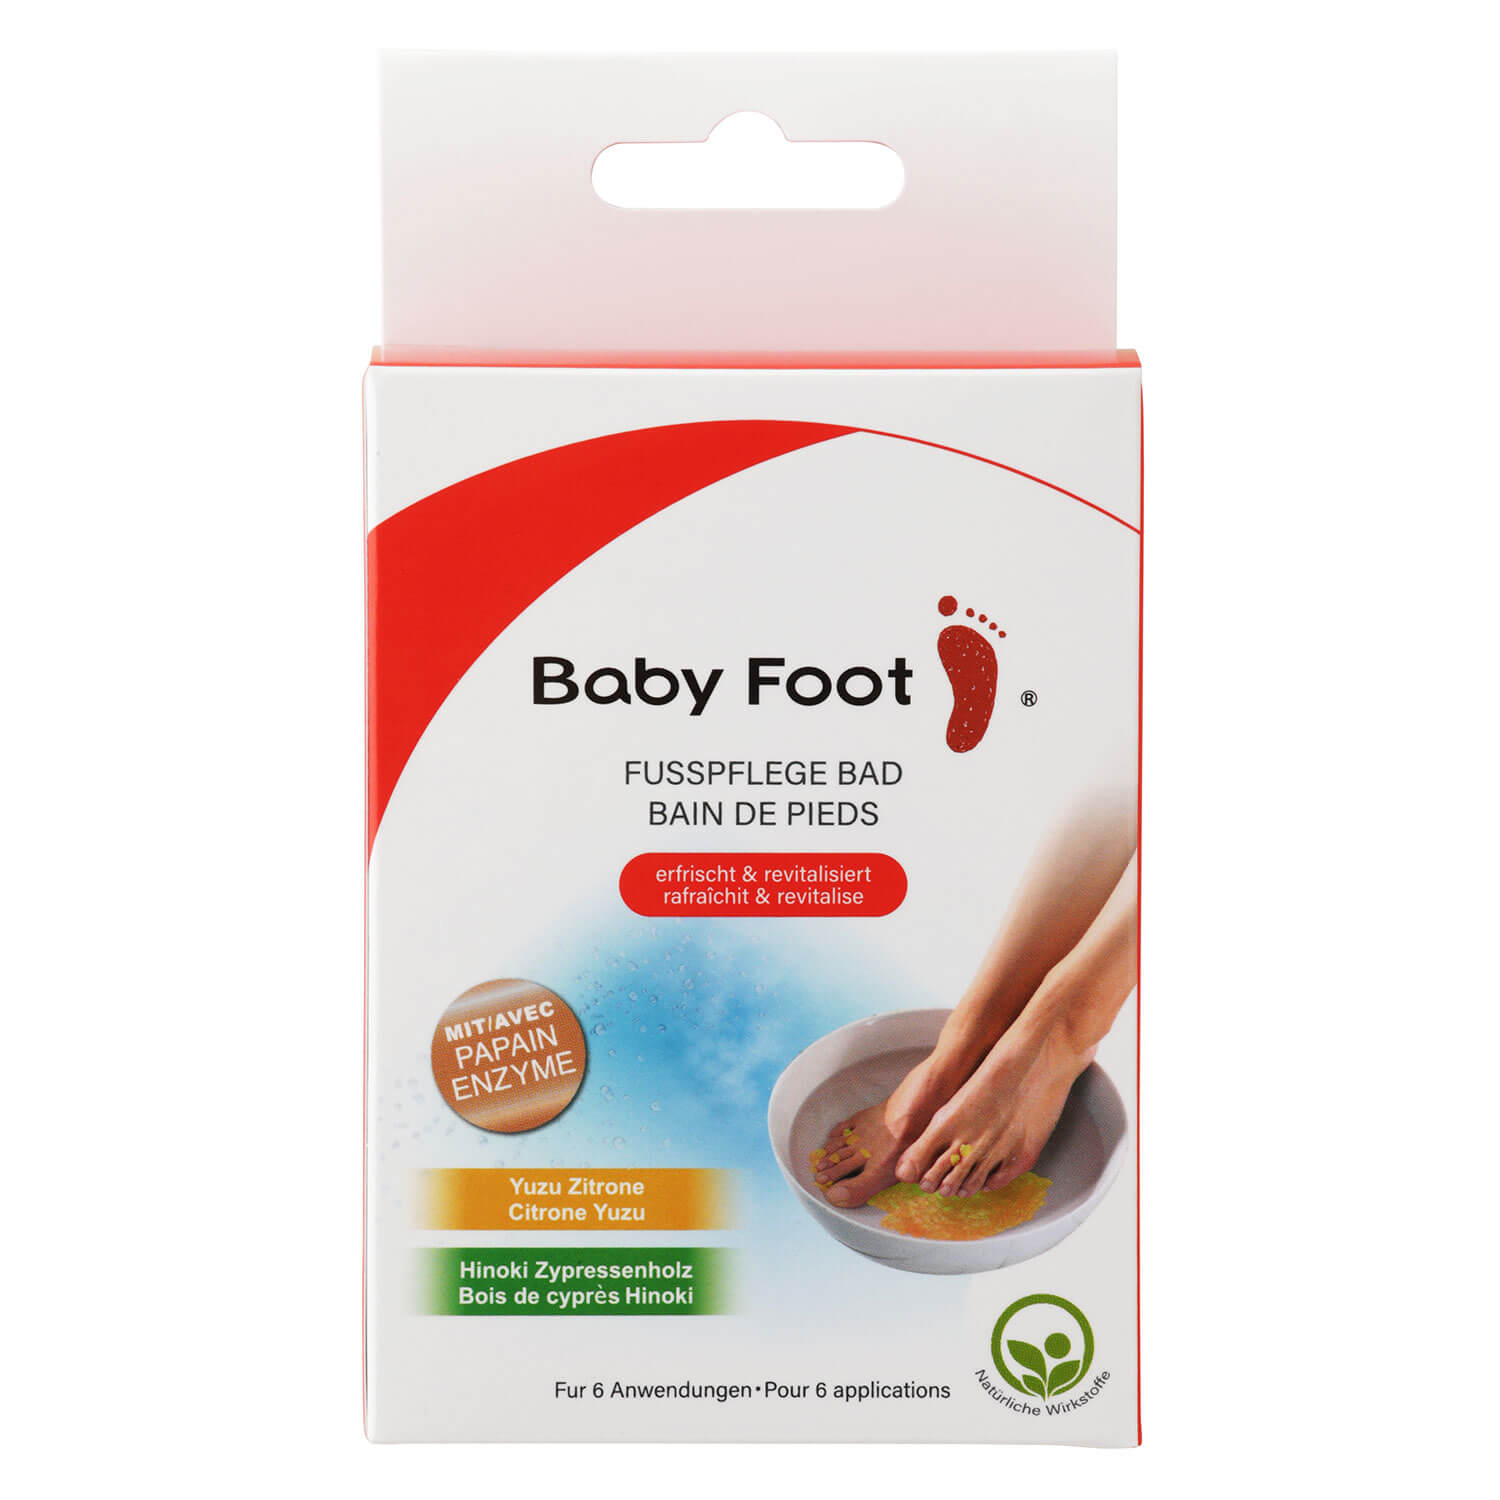 Baby Foot - Foot Smoothing Bath Spa